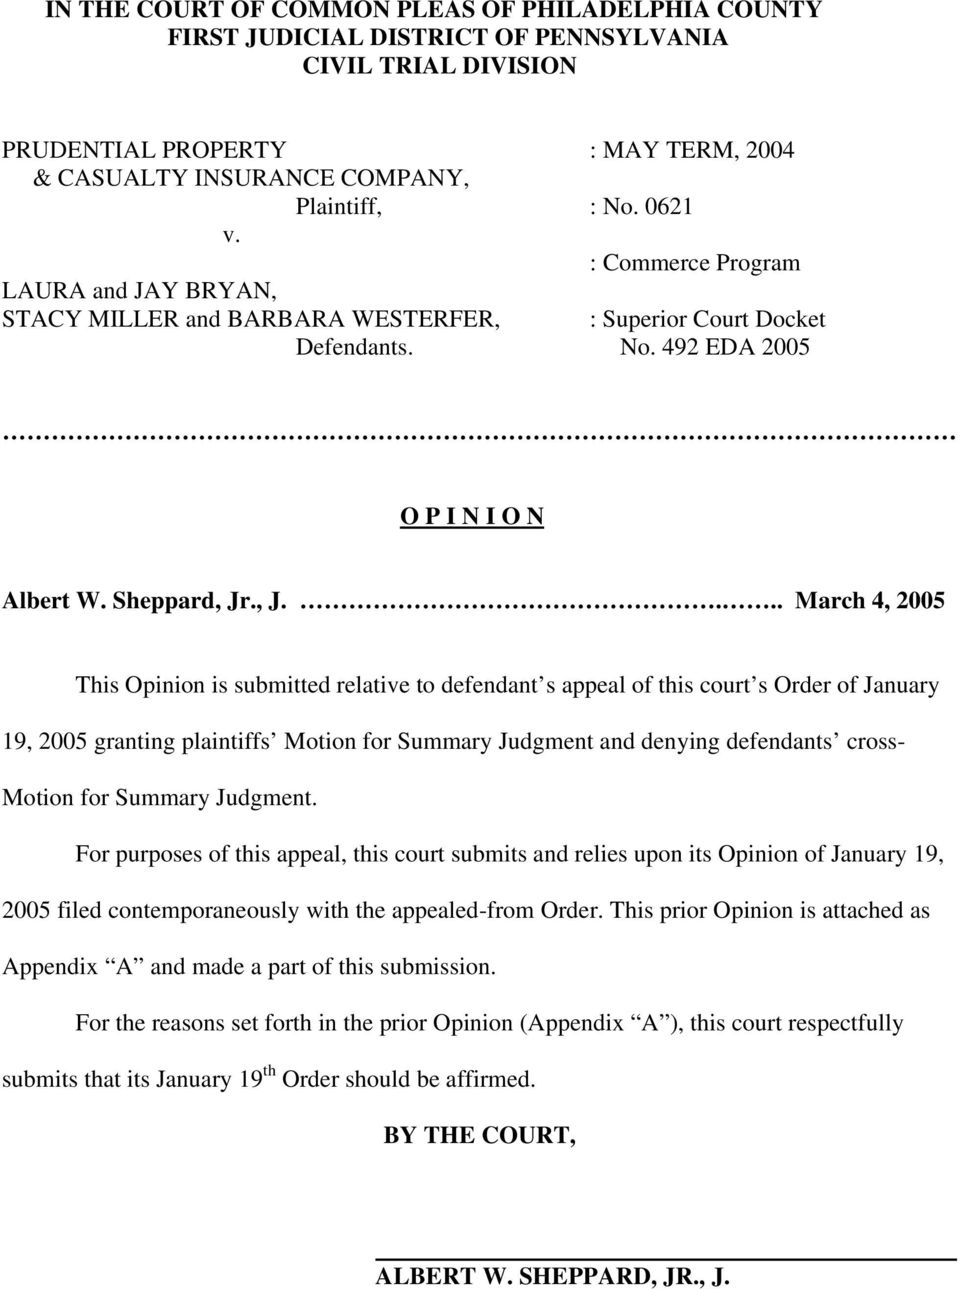 ., J.... March 4, 2005 This Opinion is submitted relative to defendant s appeal of this court s Order of January 19, 2005 granting plaintiffs Motion for Summary Judgment and denying defendants cross-